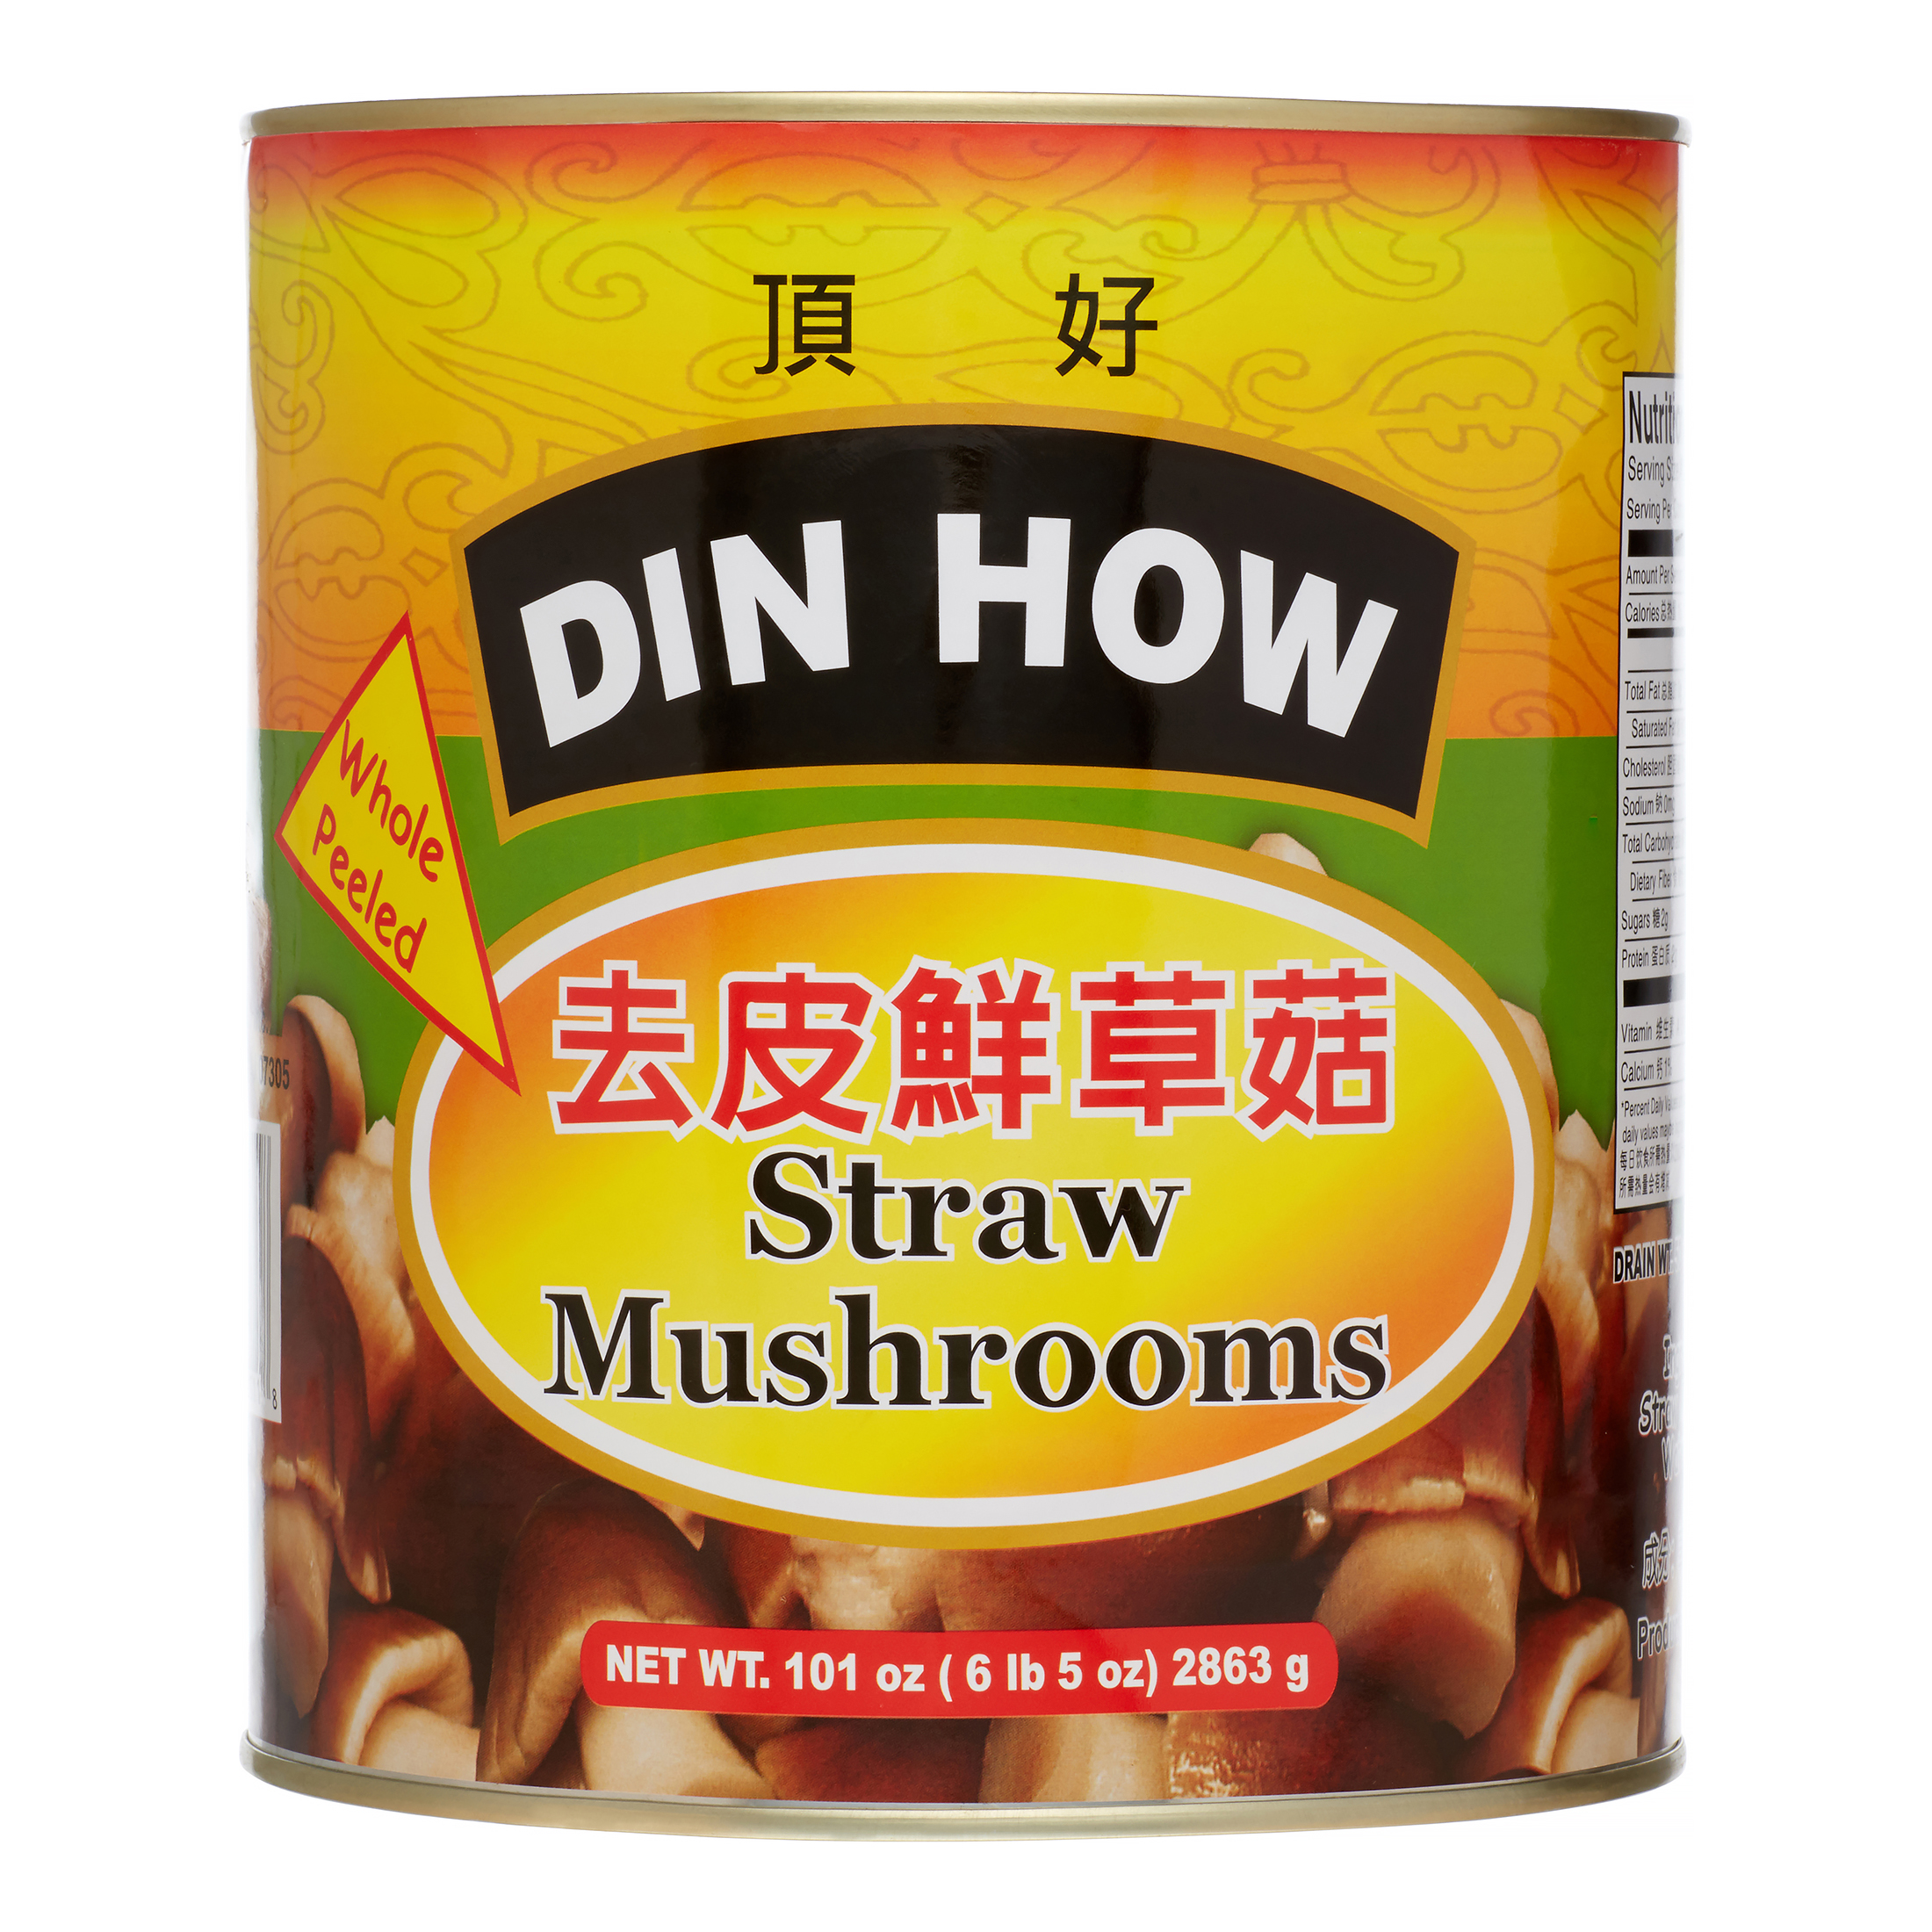 Din How Straw Mushroom Medium Peeled, 101.0 Oz by Din How